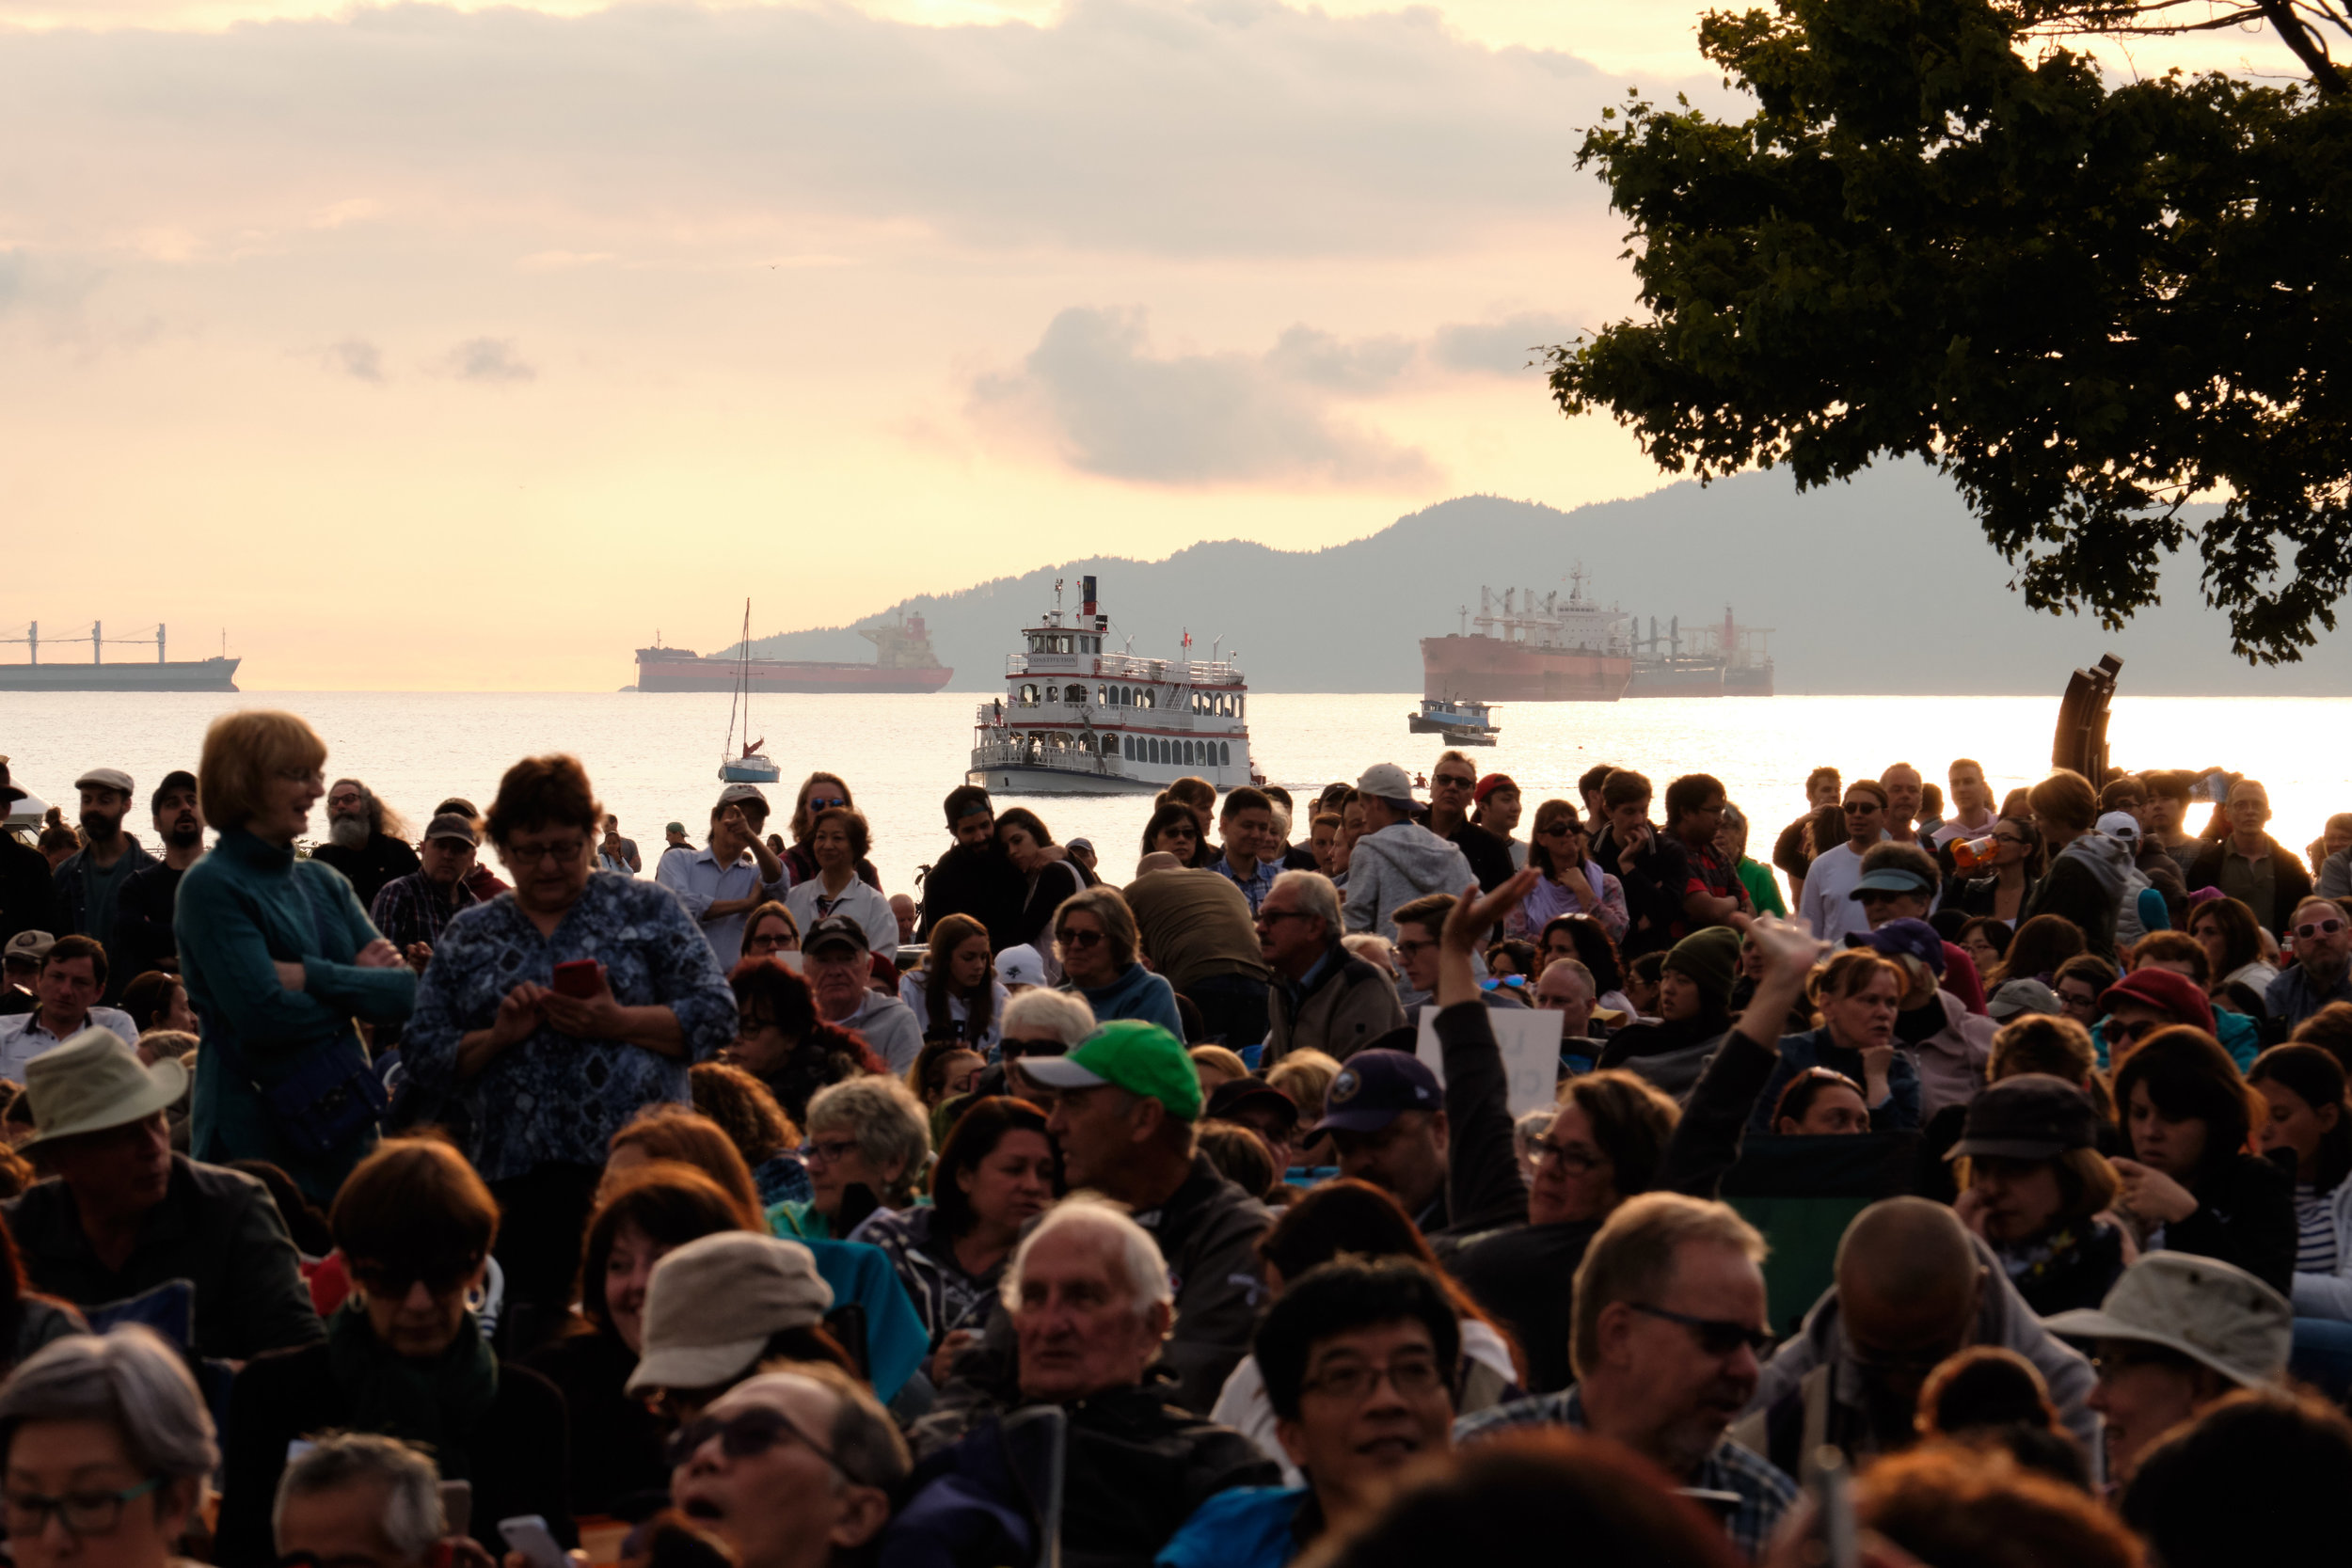 Spectators at Sympohy at Sunset event in Vancouver, BC, Canada